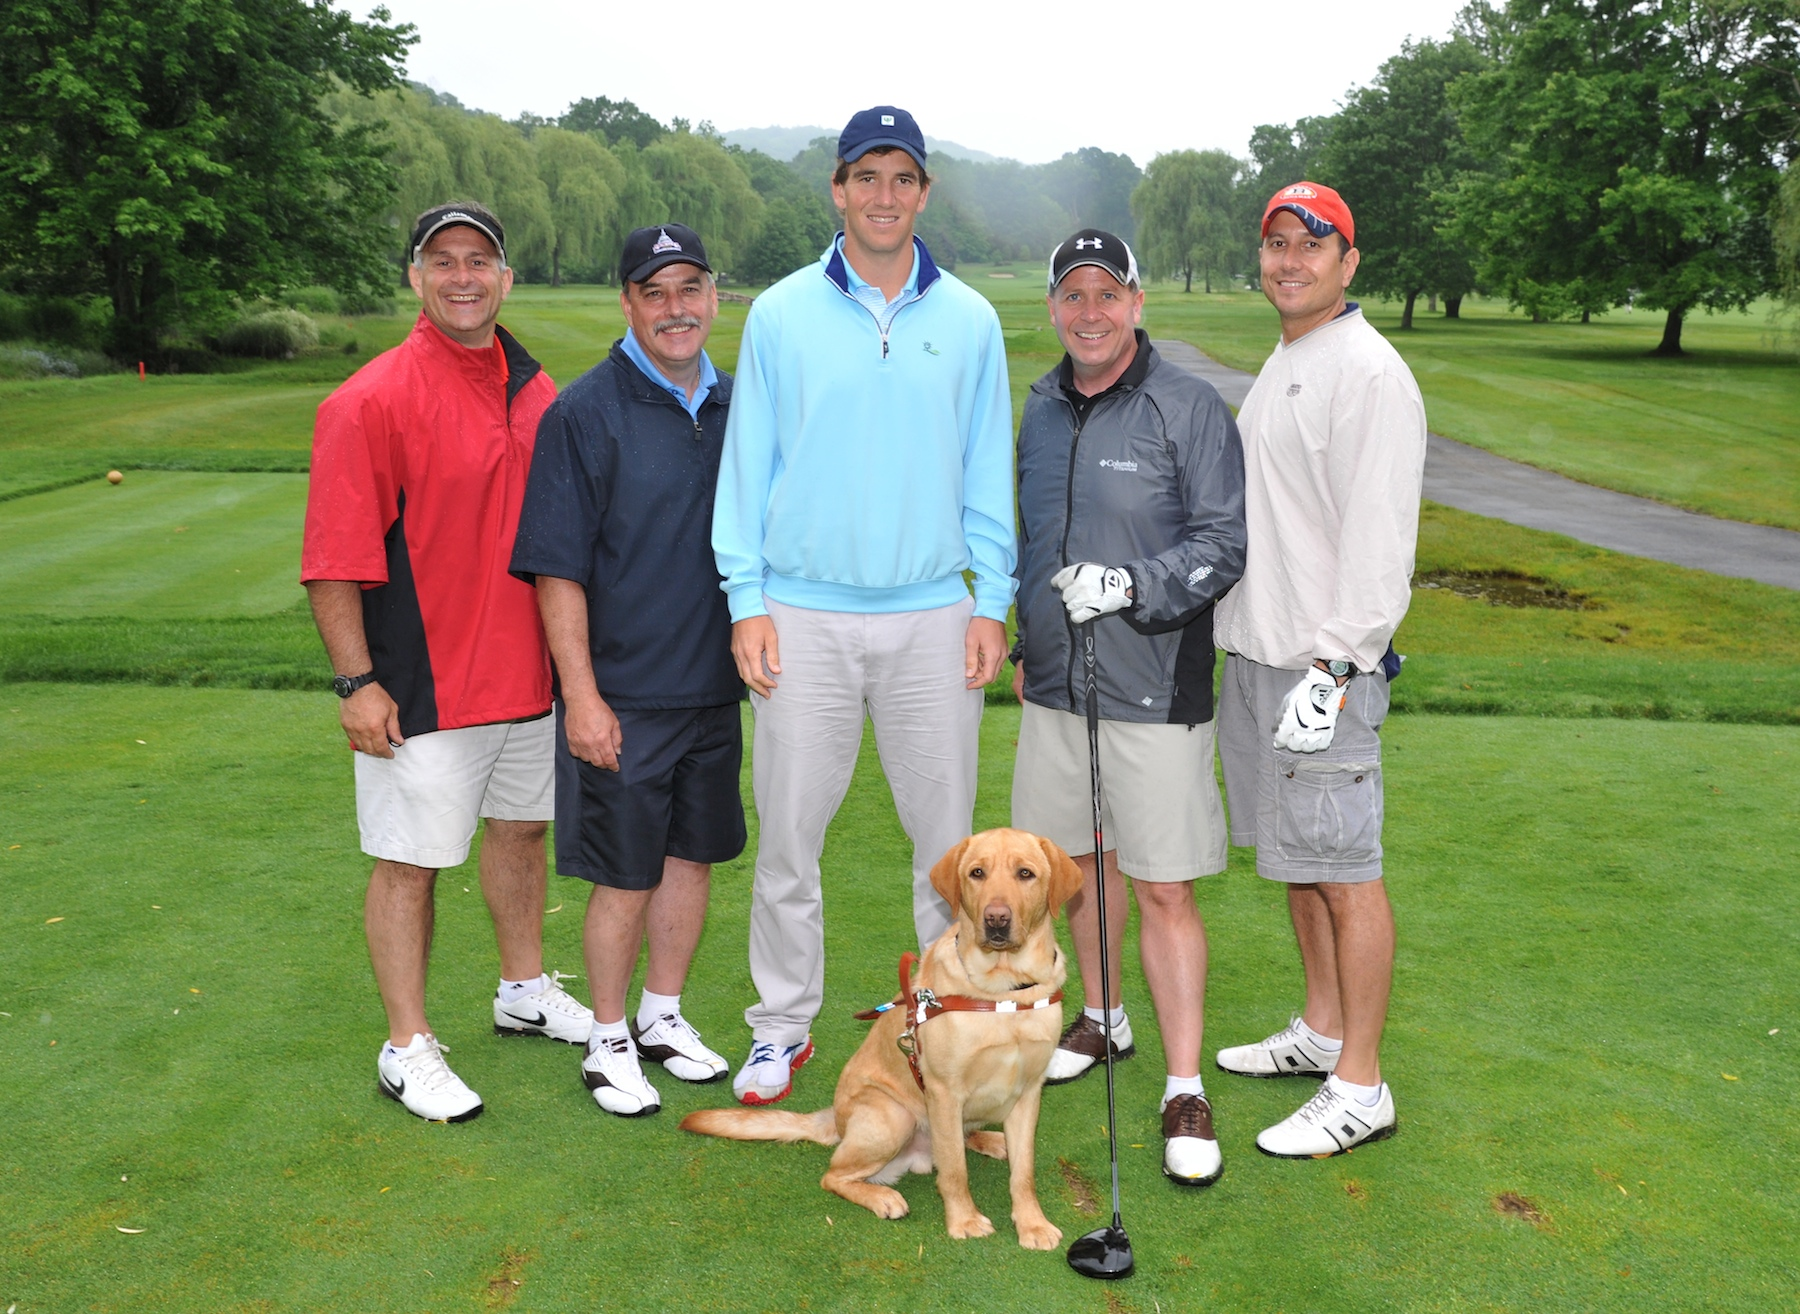 Guiding Eyes For The Blind S Golf Classic With Ny Giants